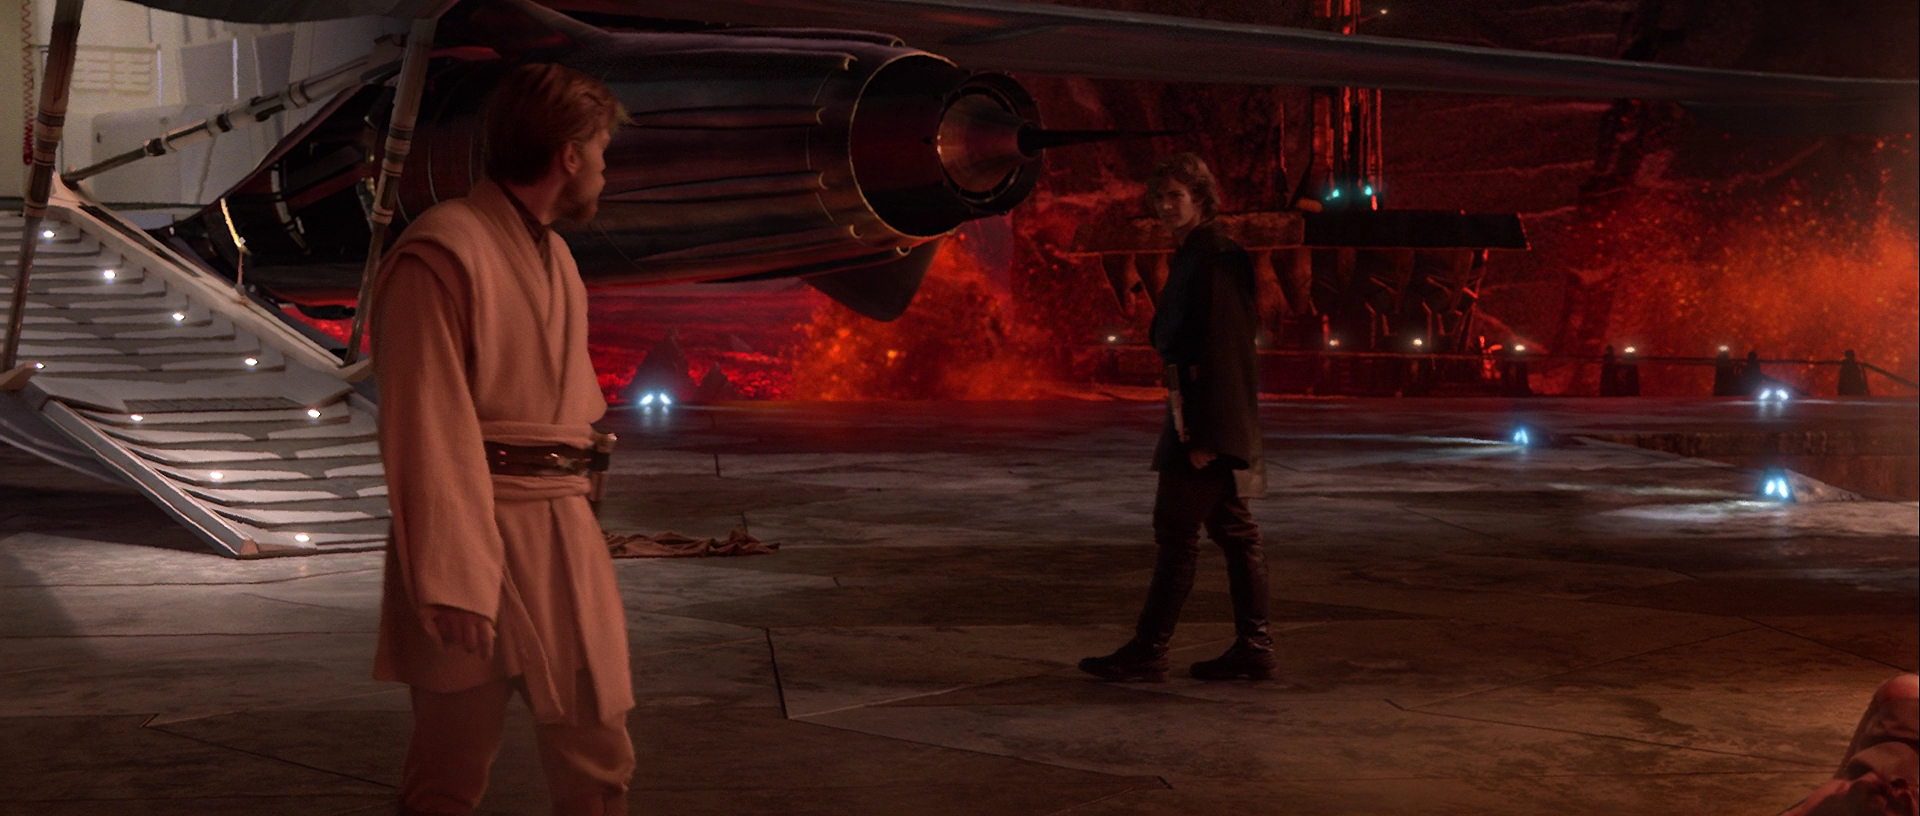 Star Wars Episode Iii Revenge Of The Sith Wallpapers Posted By Ethan Anderson